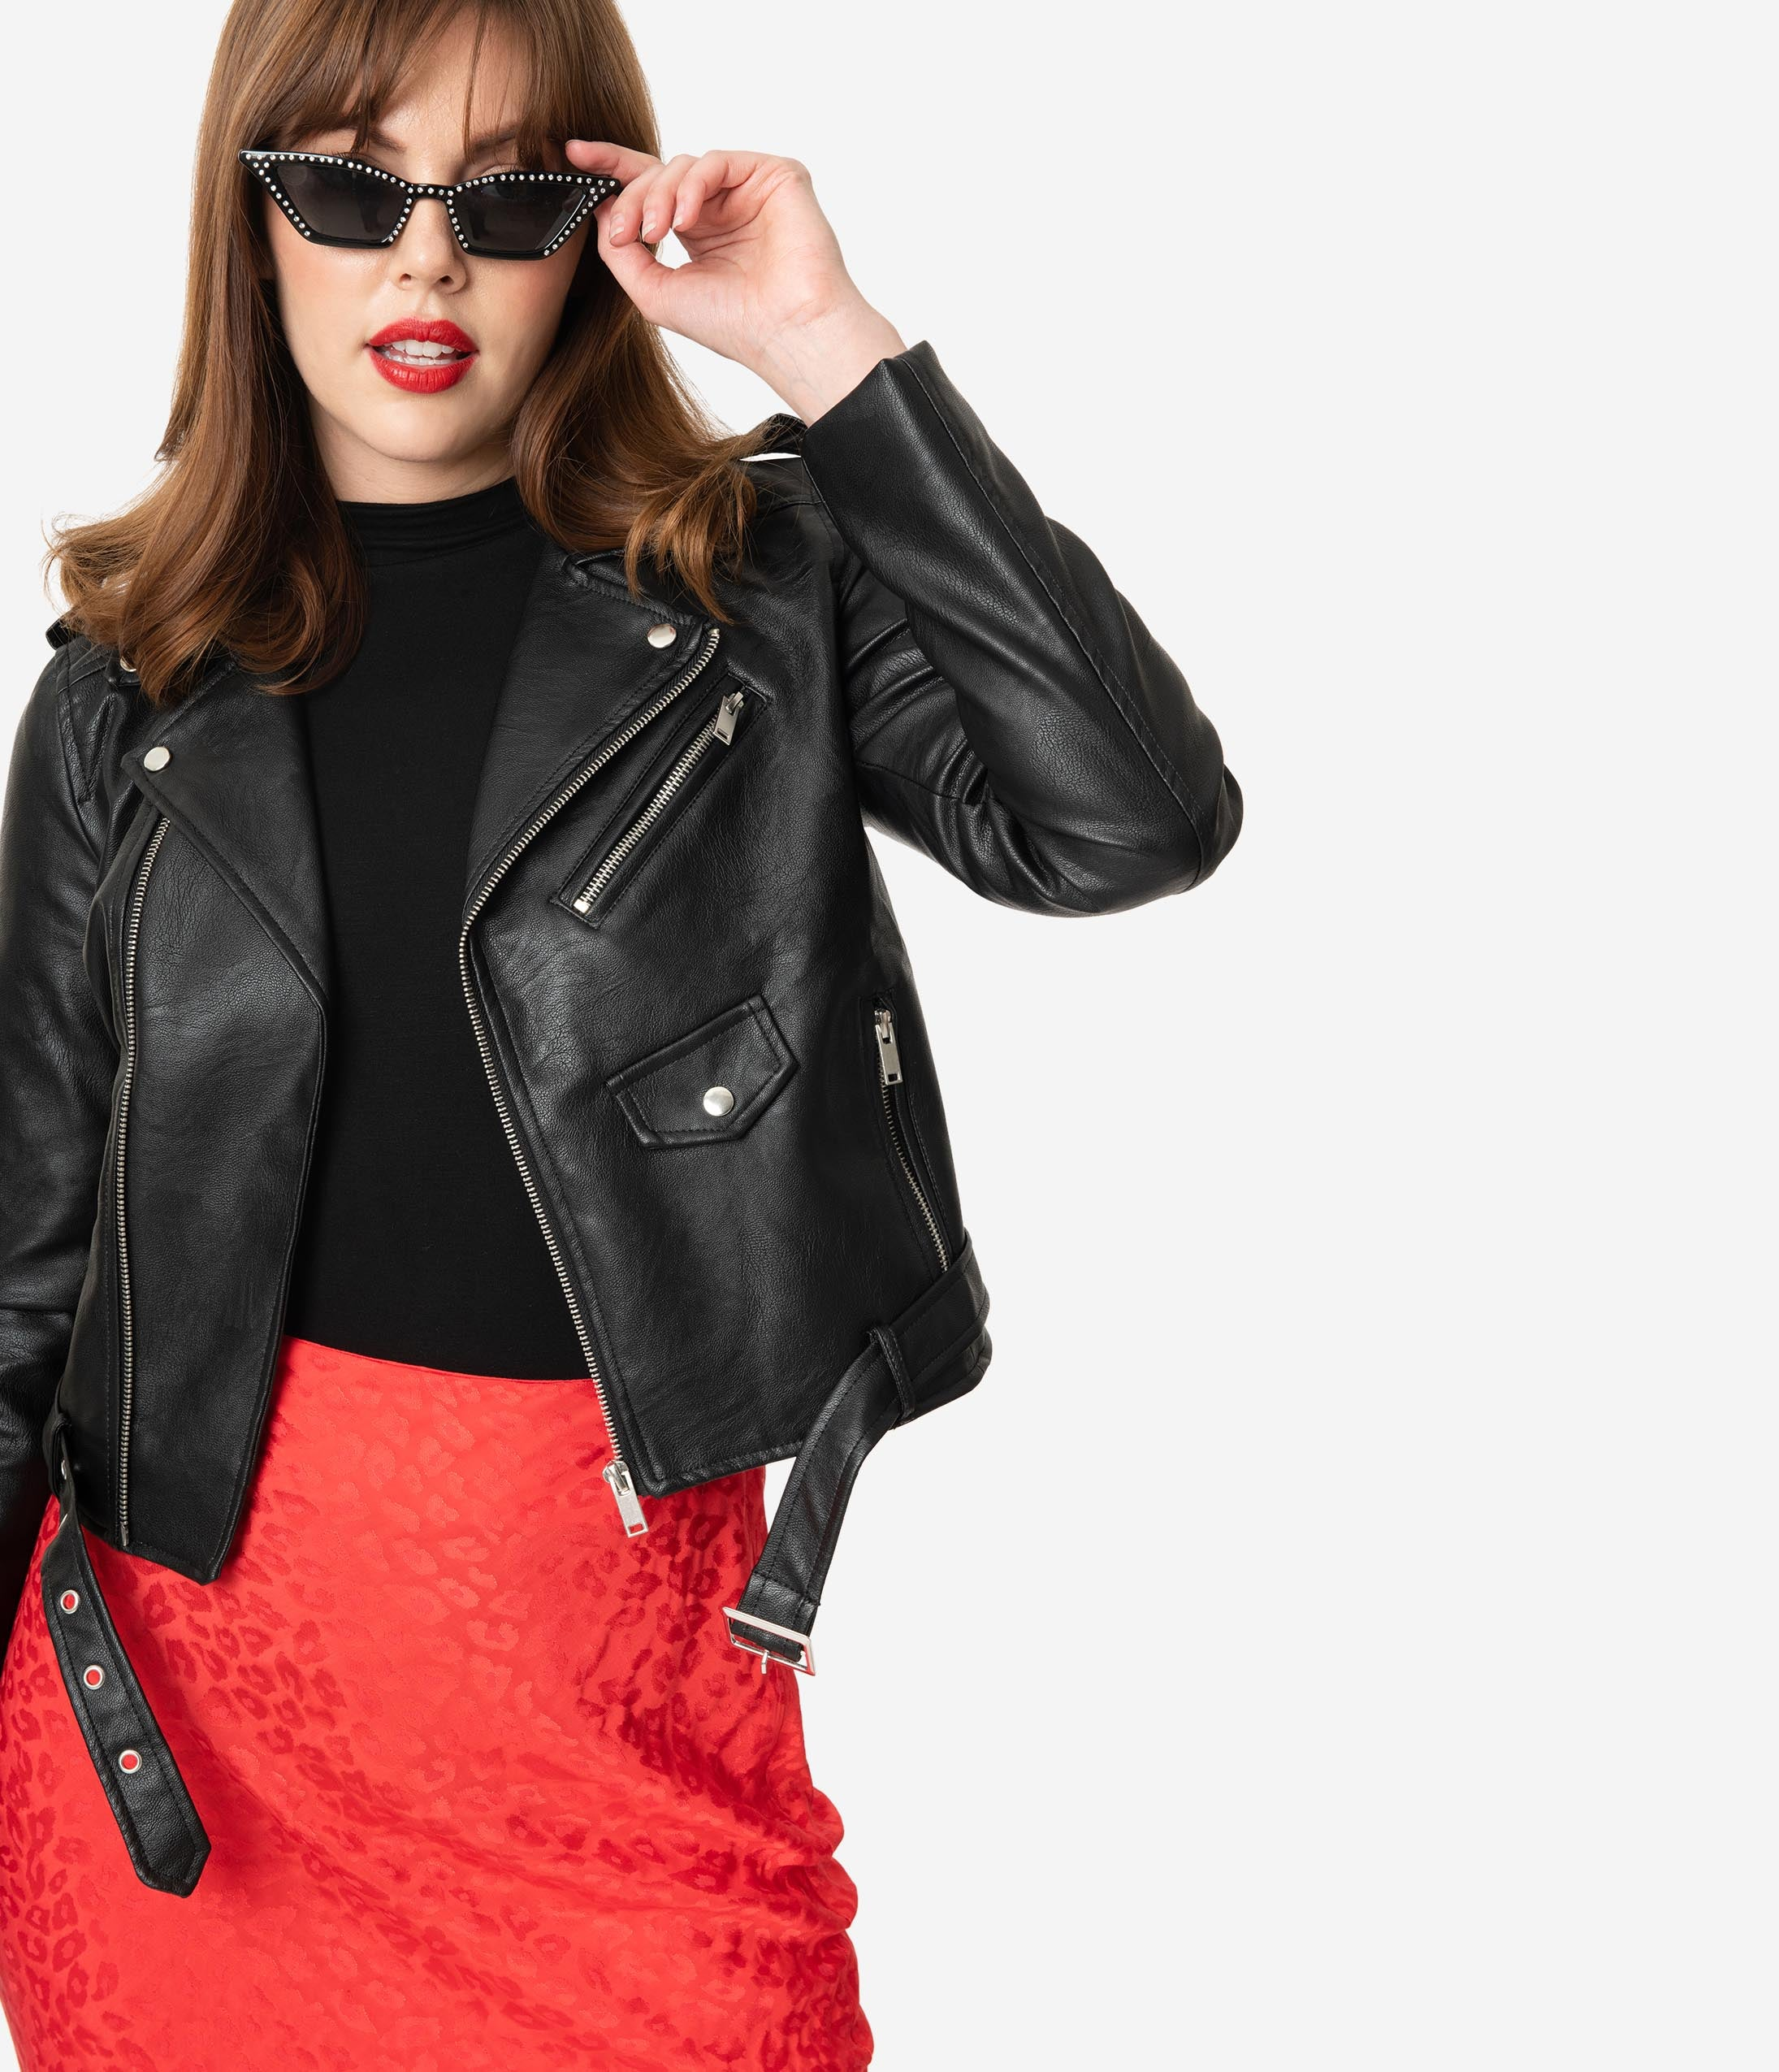 Vintage Coats & Jackets | Retro Coats and Jackets Black Leatherette Biker Jacket $48.00 AT vintagedancer.com